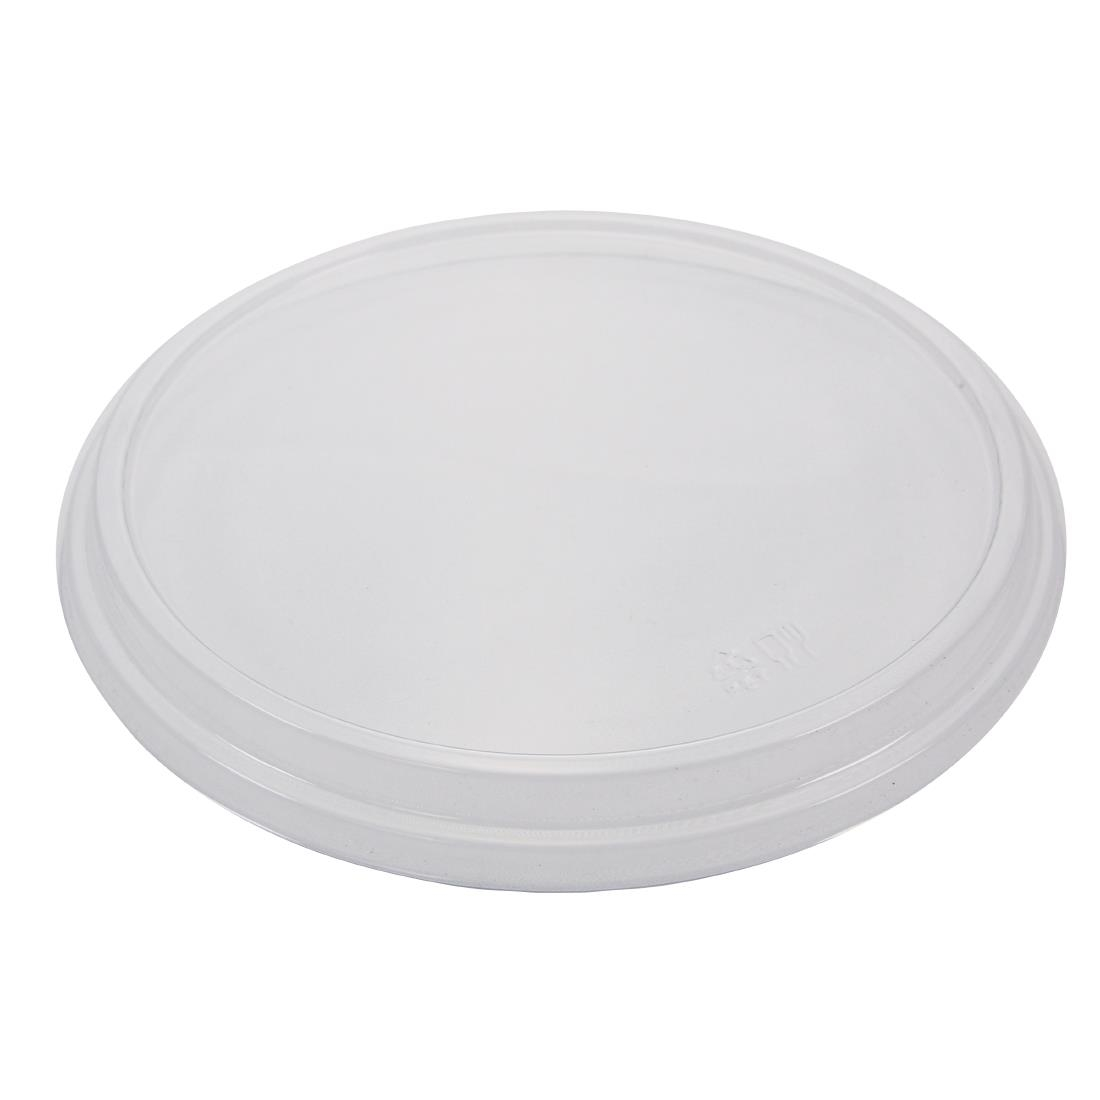 Image of Creative PET Salad Box Lids Clear 205x145mm (Pack of 50)